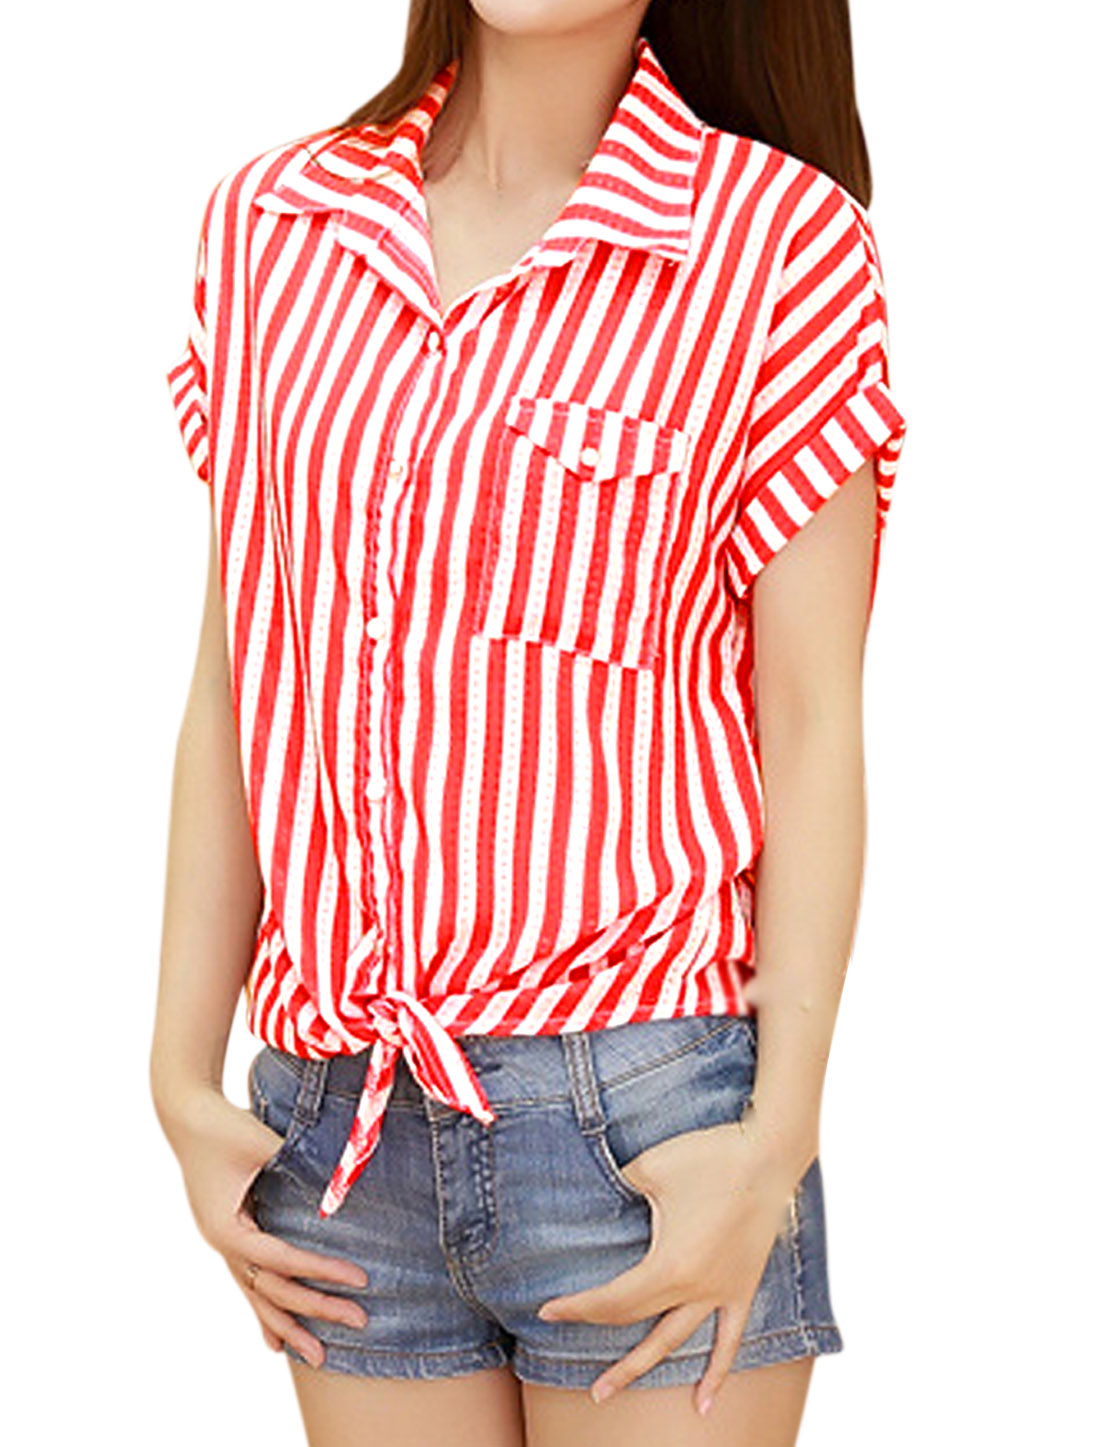 Women Short Sleeve Single Breasted Tie Hem Stripes Blouse Red M